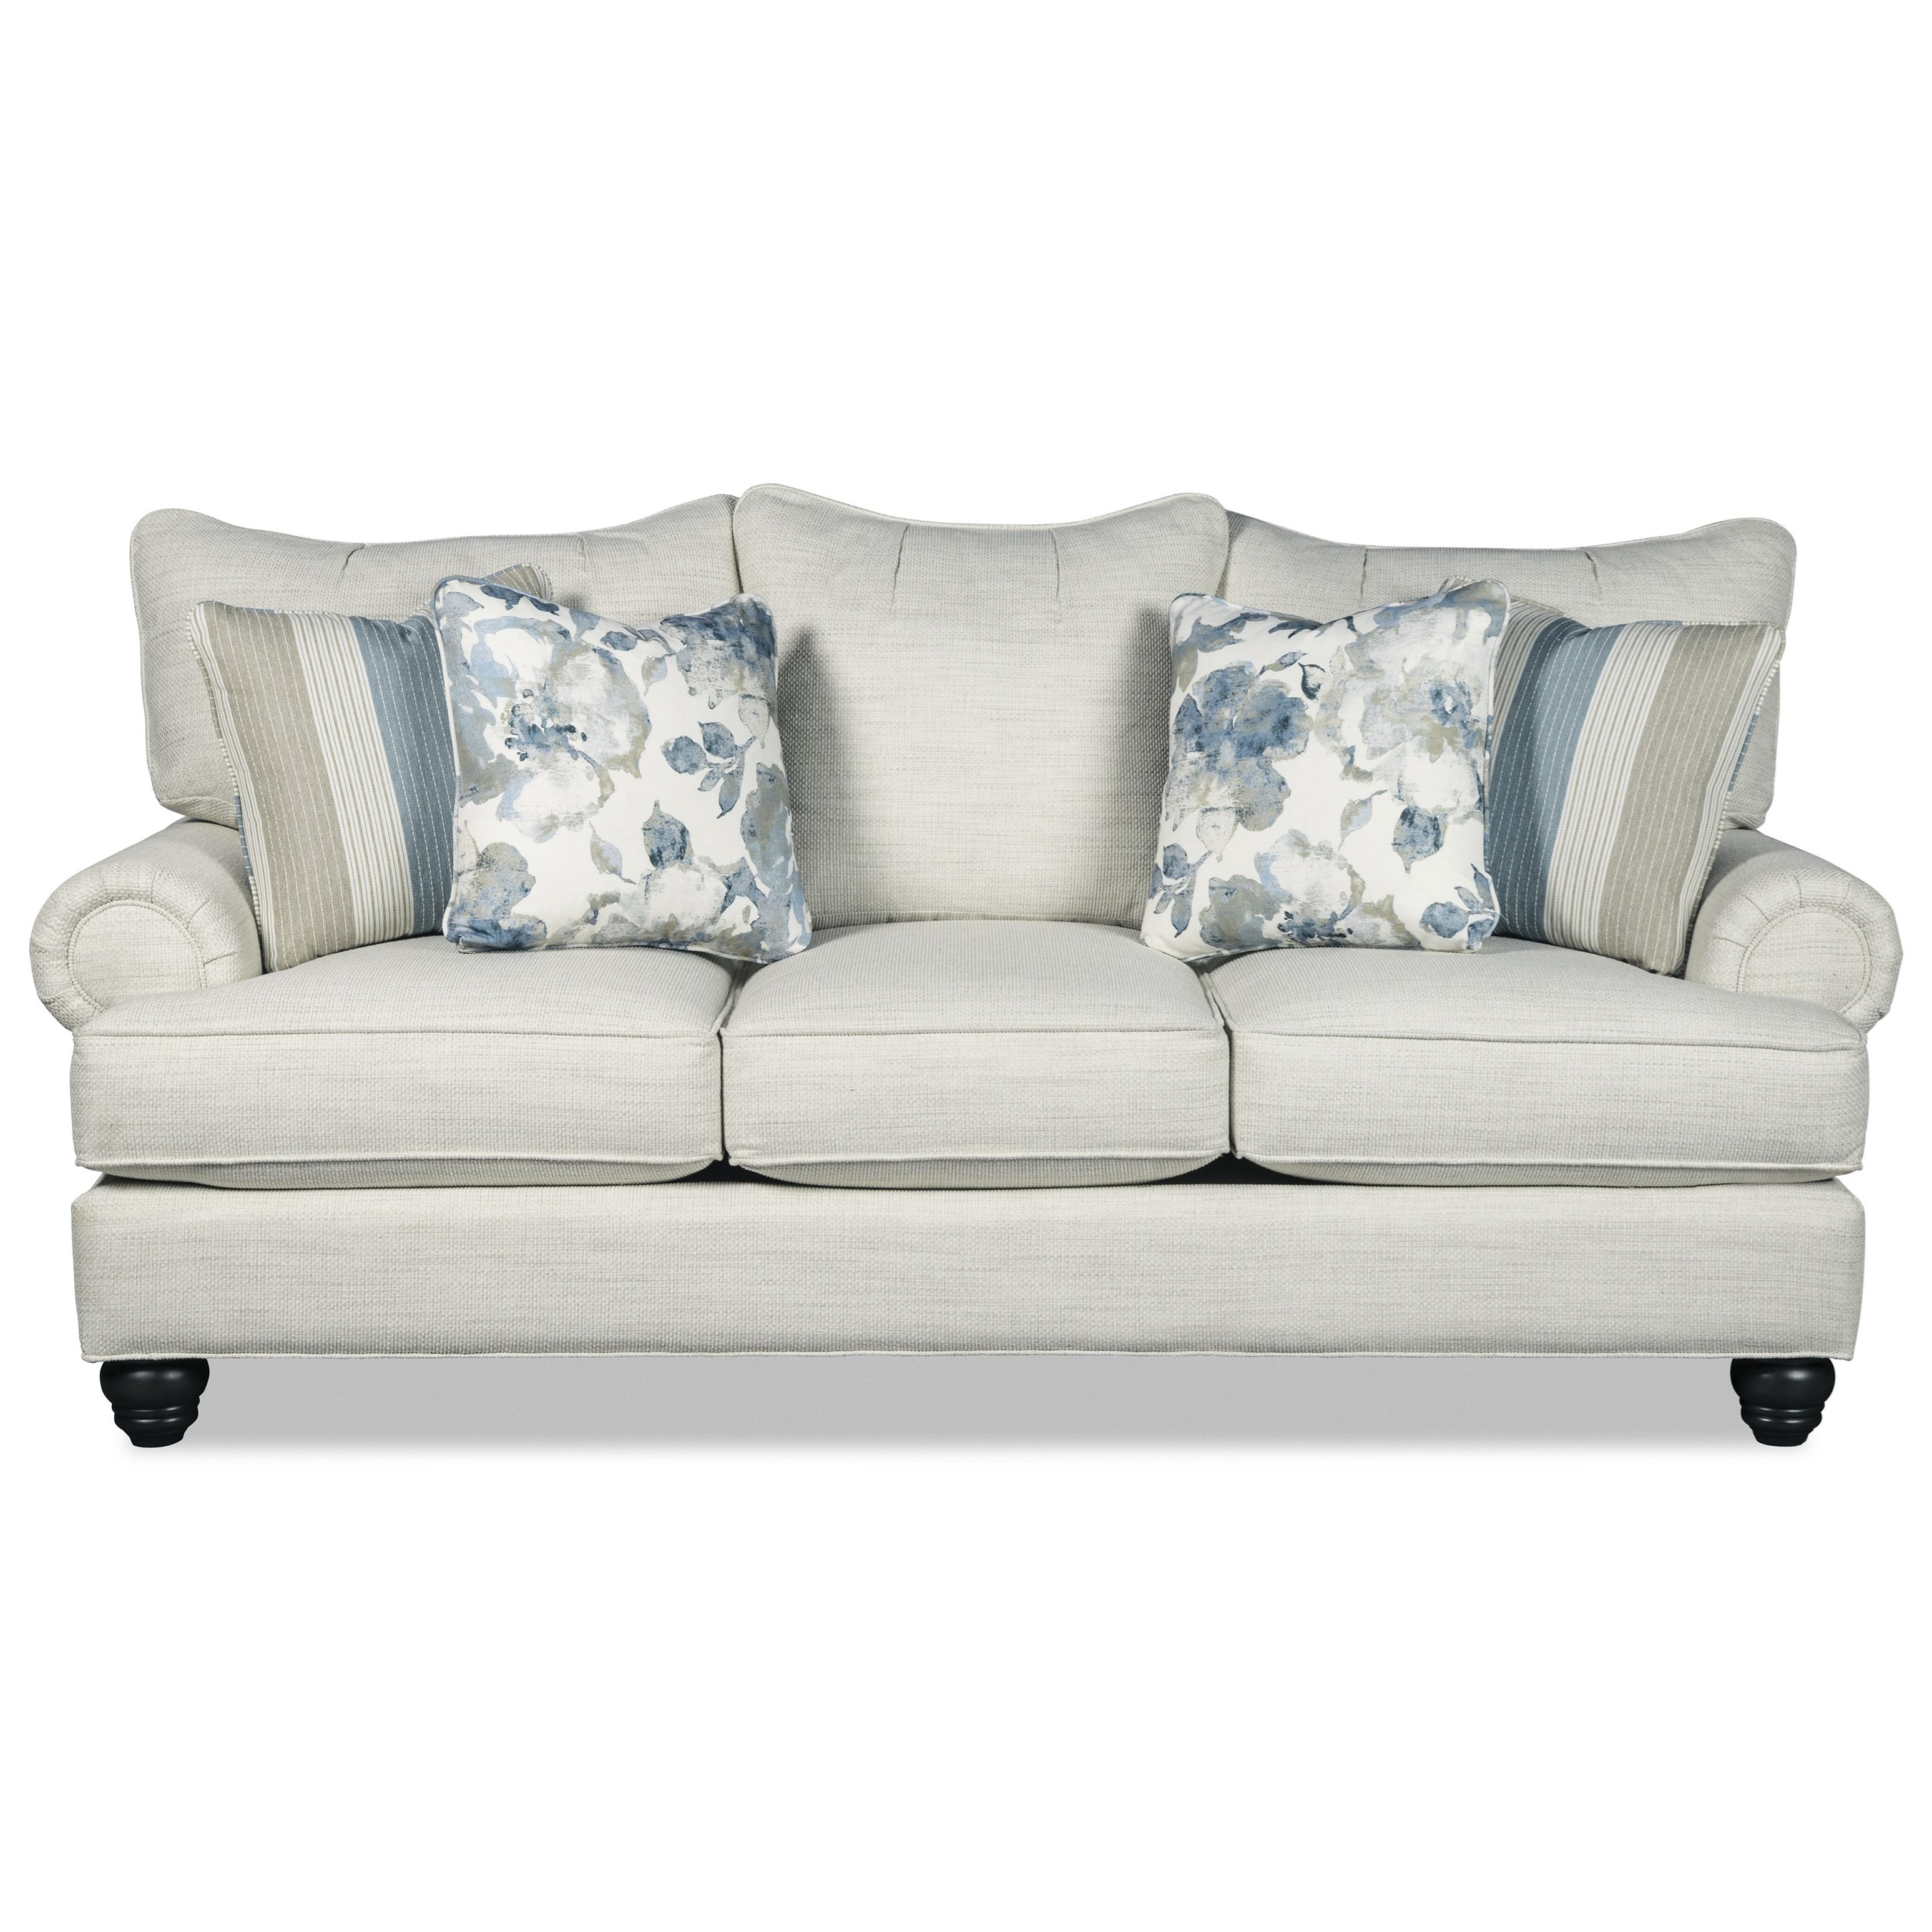 700450 Sofa by Craftmaster at Esprit Decor Home Furnishings